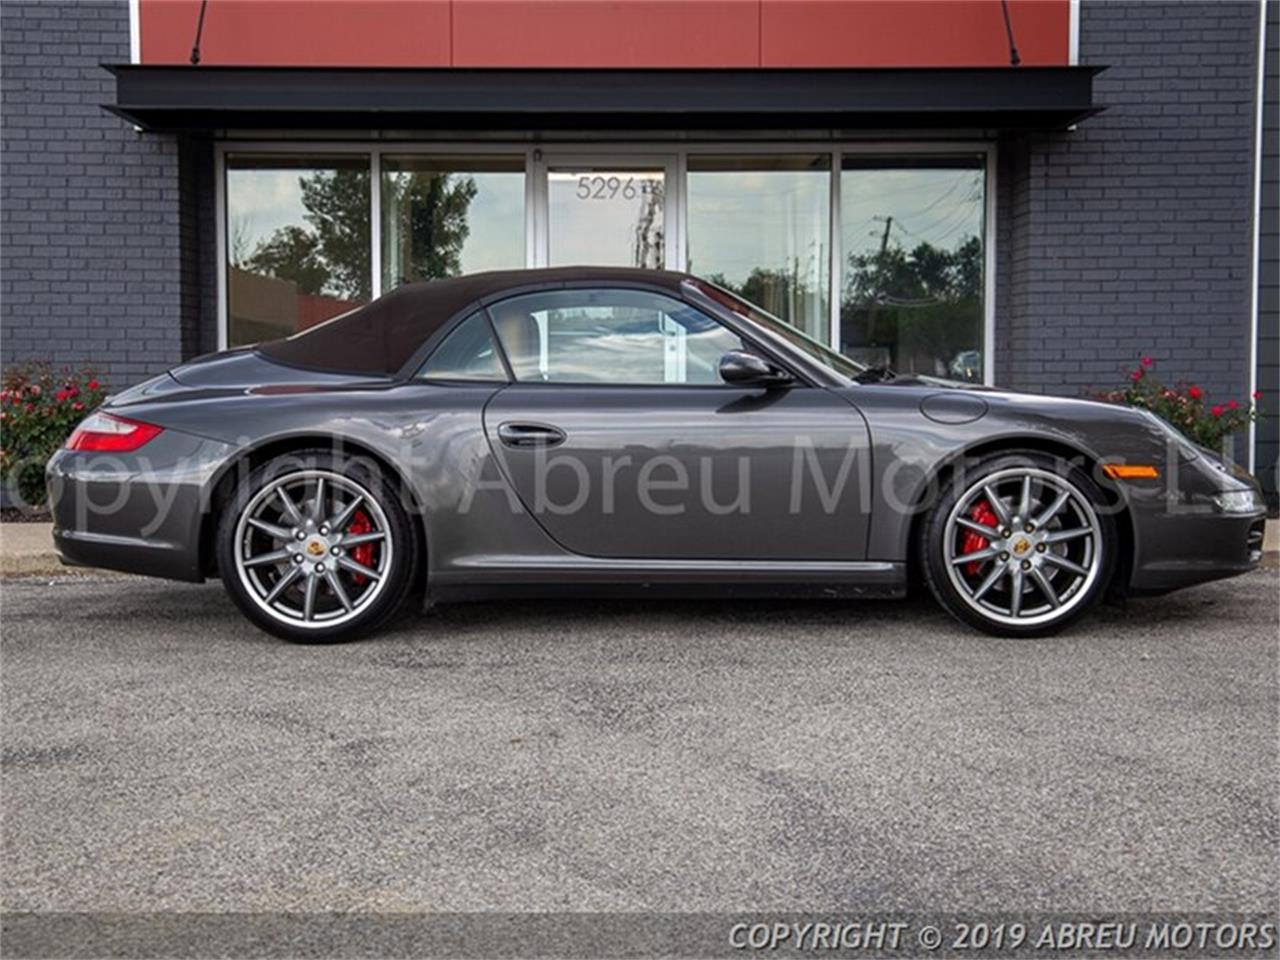 2007 Porsche 911 Carrera 4S (CC-1245700) for sale in Carmel, Indiana